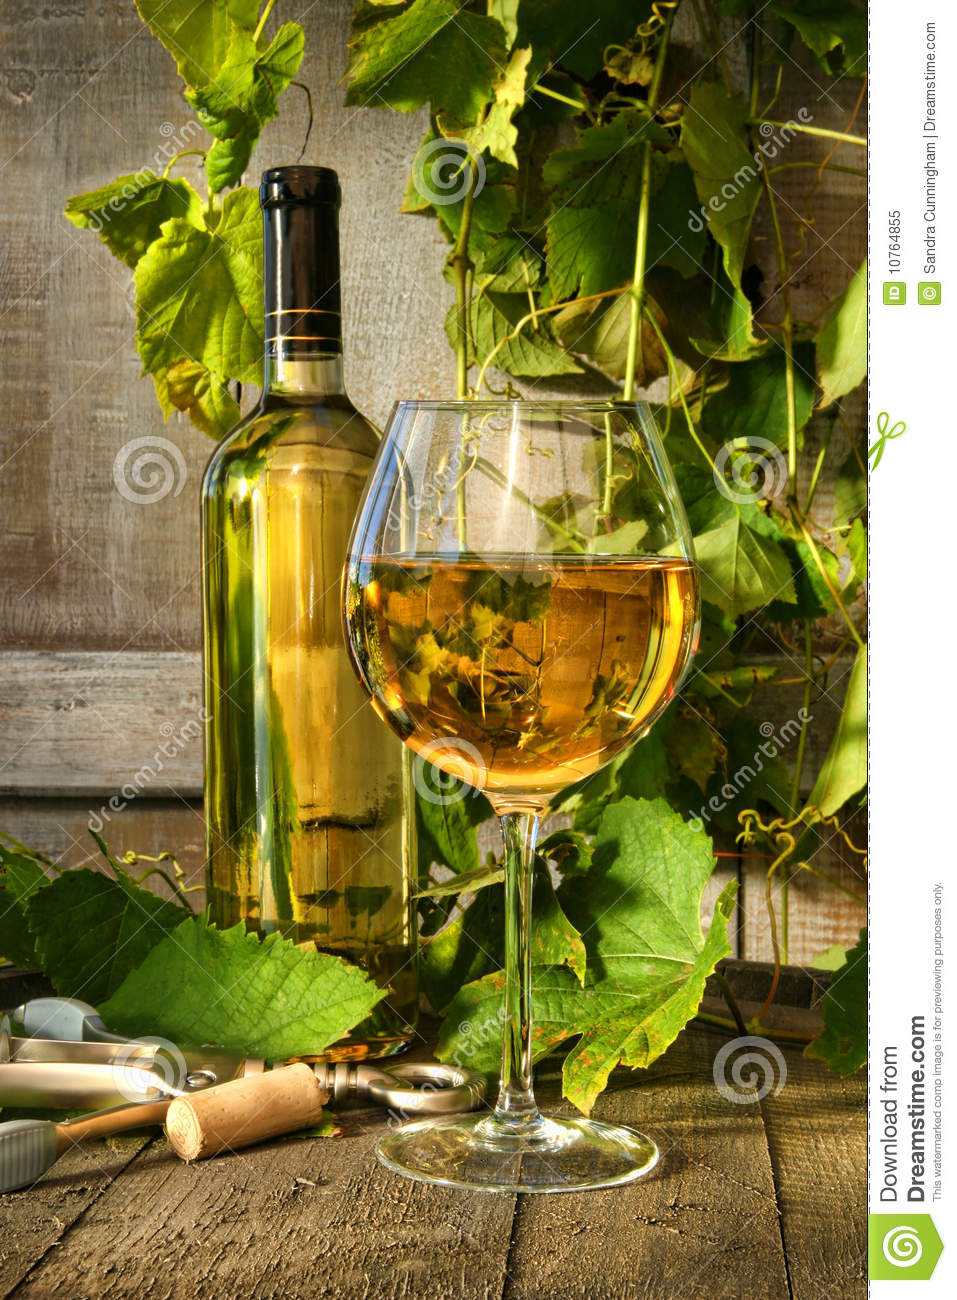 Glass of white wine and bottle on barrel